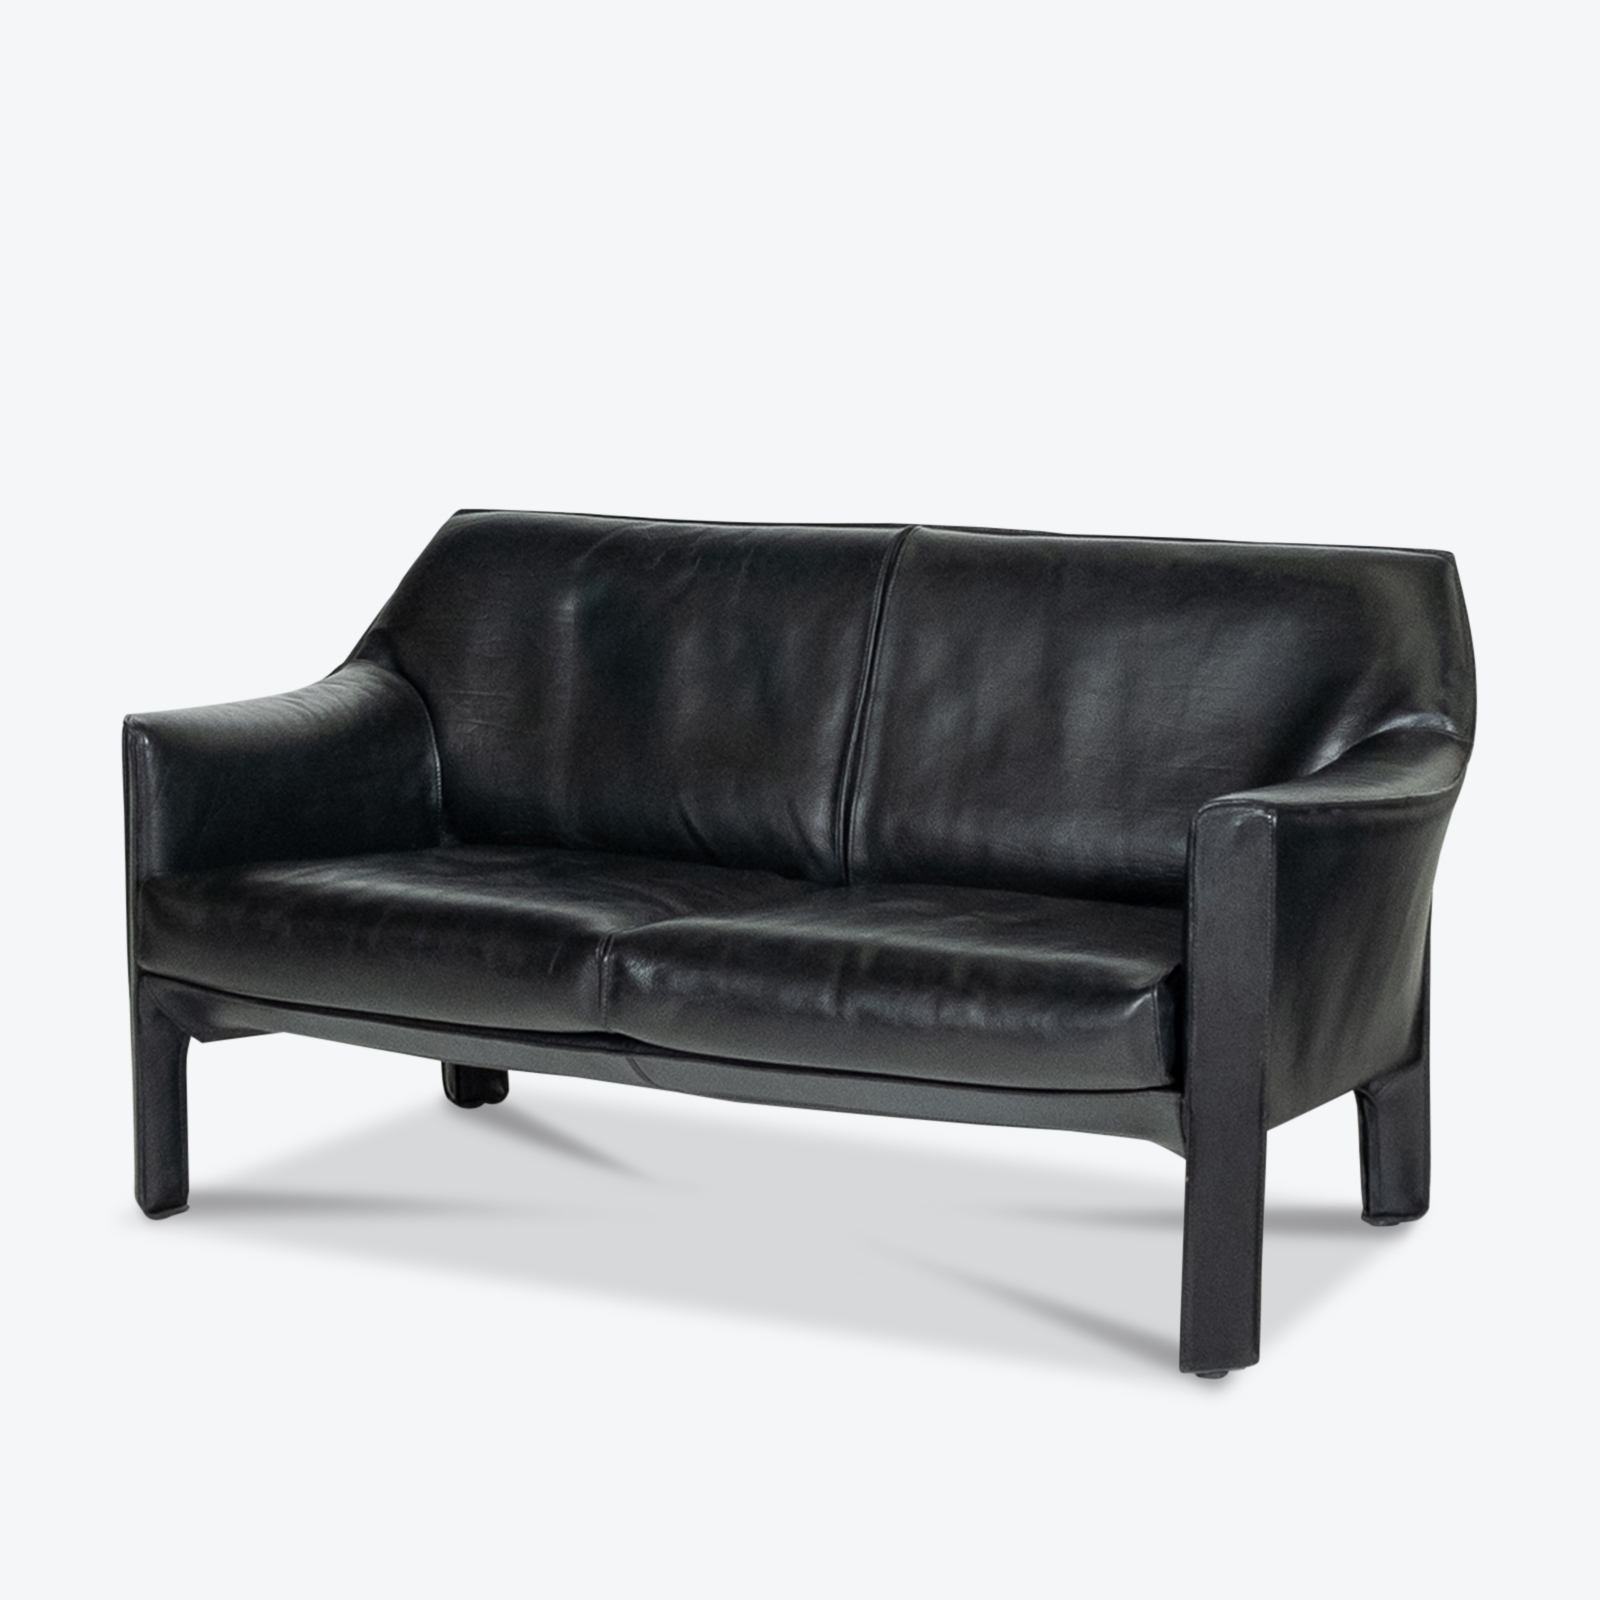 Model 415 Cab 2 Seat Sofa By Mario Bellini For Cassina In Black Leather, 1987, Italy Hero Deepetched